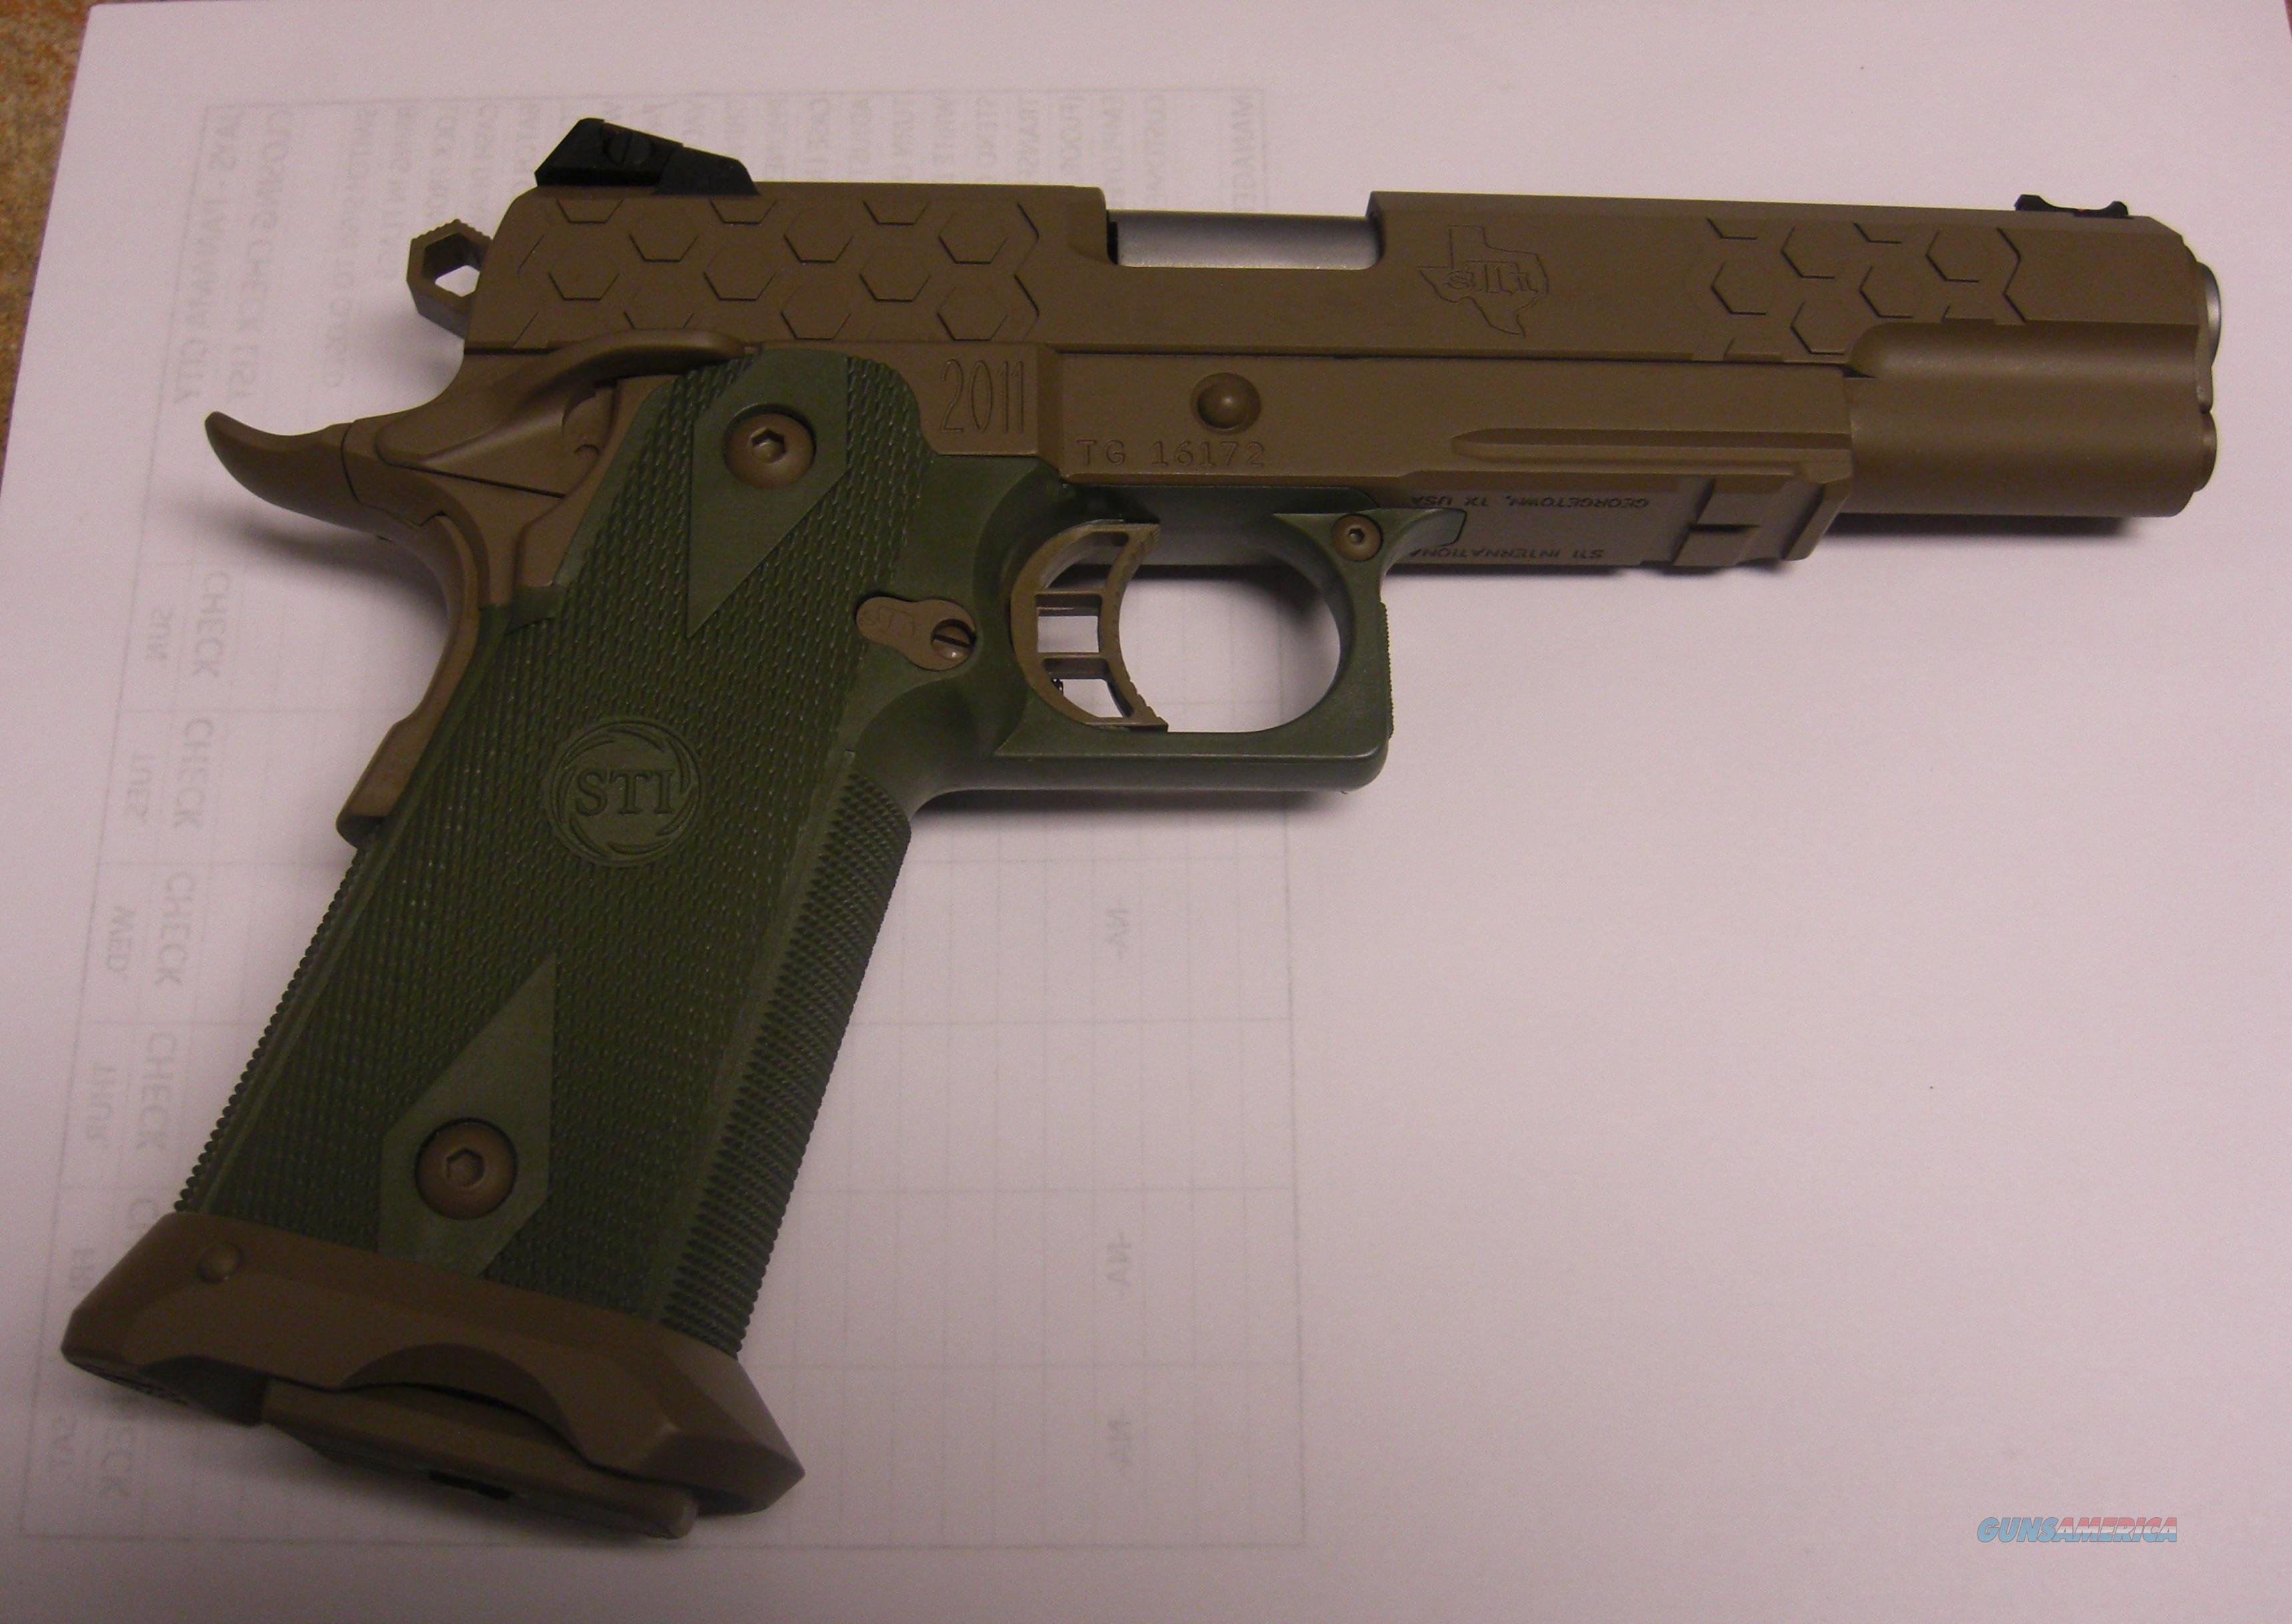 2011 Hex Tac 9 w/FDE & green finish  Guns > Pistols > STI Pistols